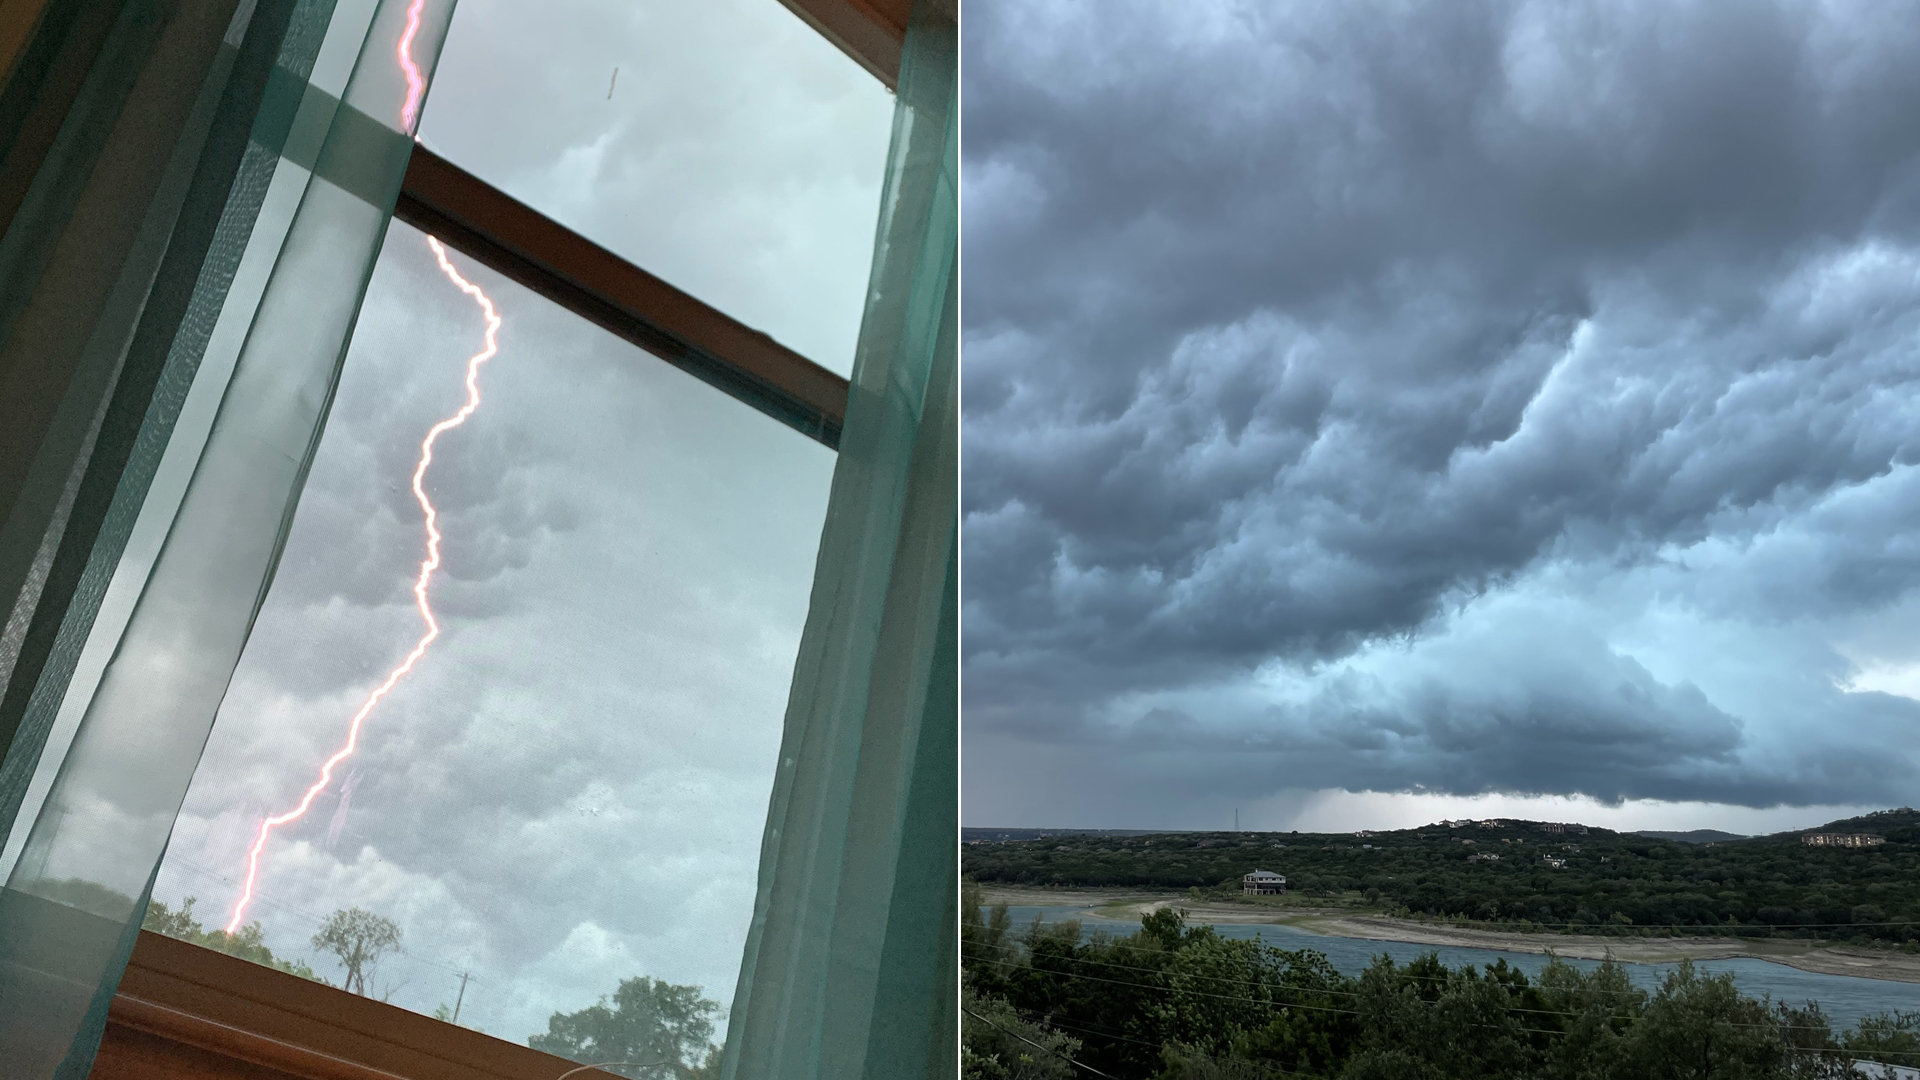 Lightning photo from Shaylee Beyer in Leander/Cedar Park area. Storm clouds photo from Holly Steinkamp over Lake Travis.